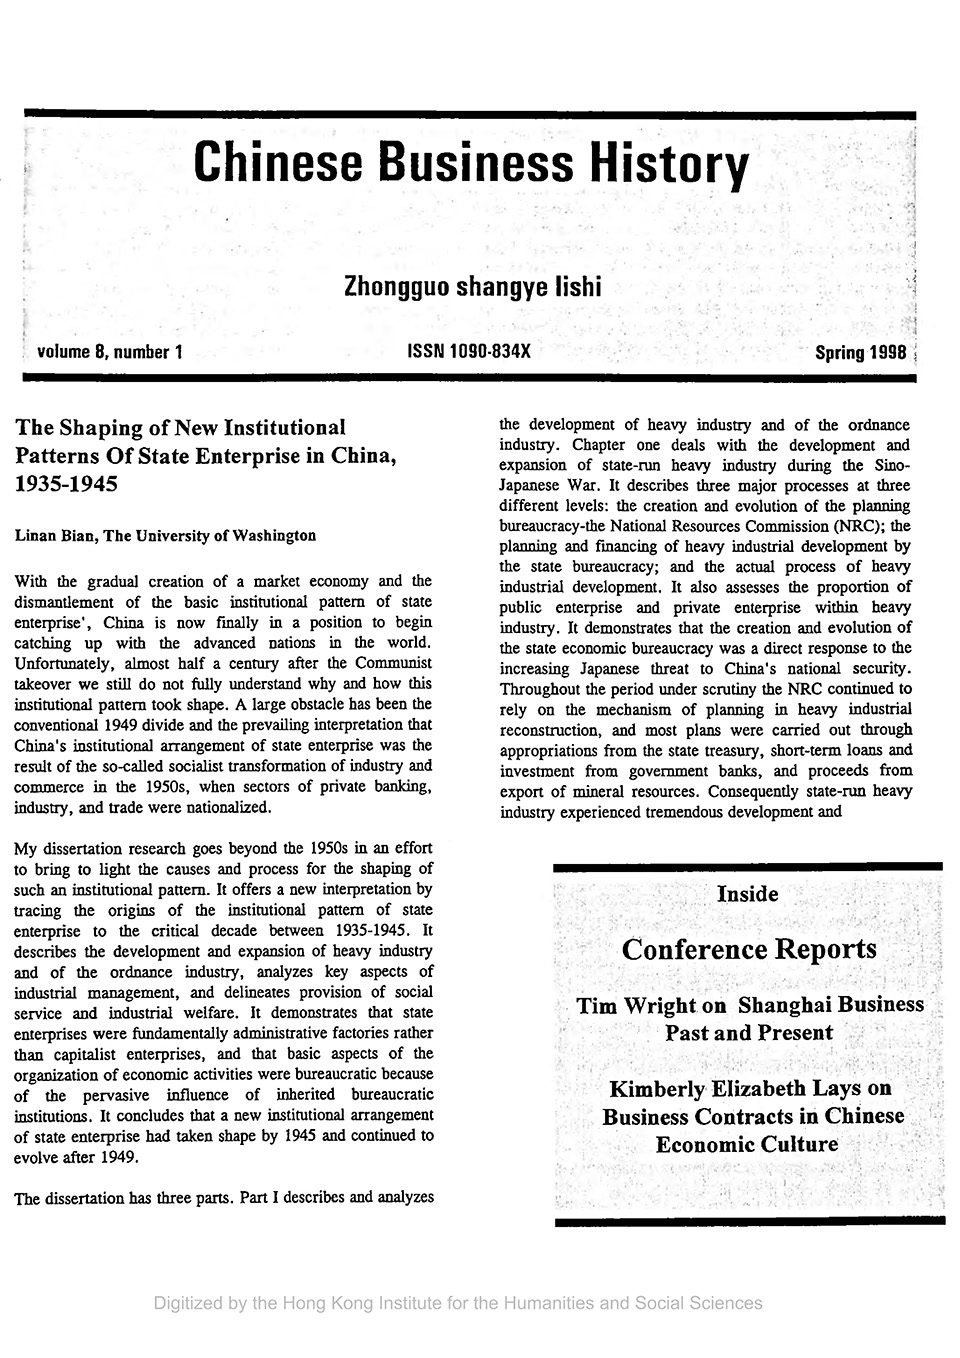 Cover of Chinese Business History Journal Volume 8, Number 1